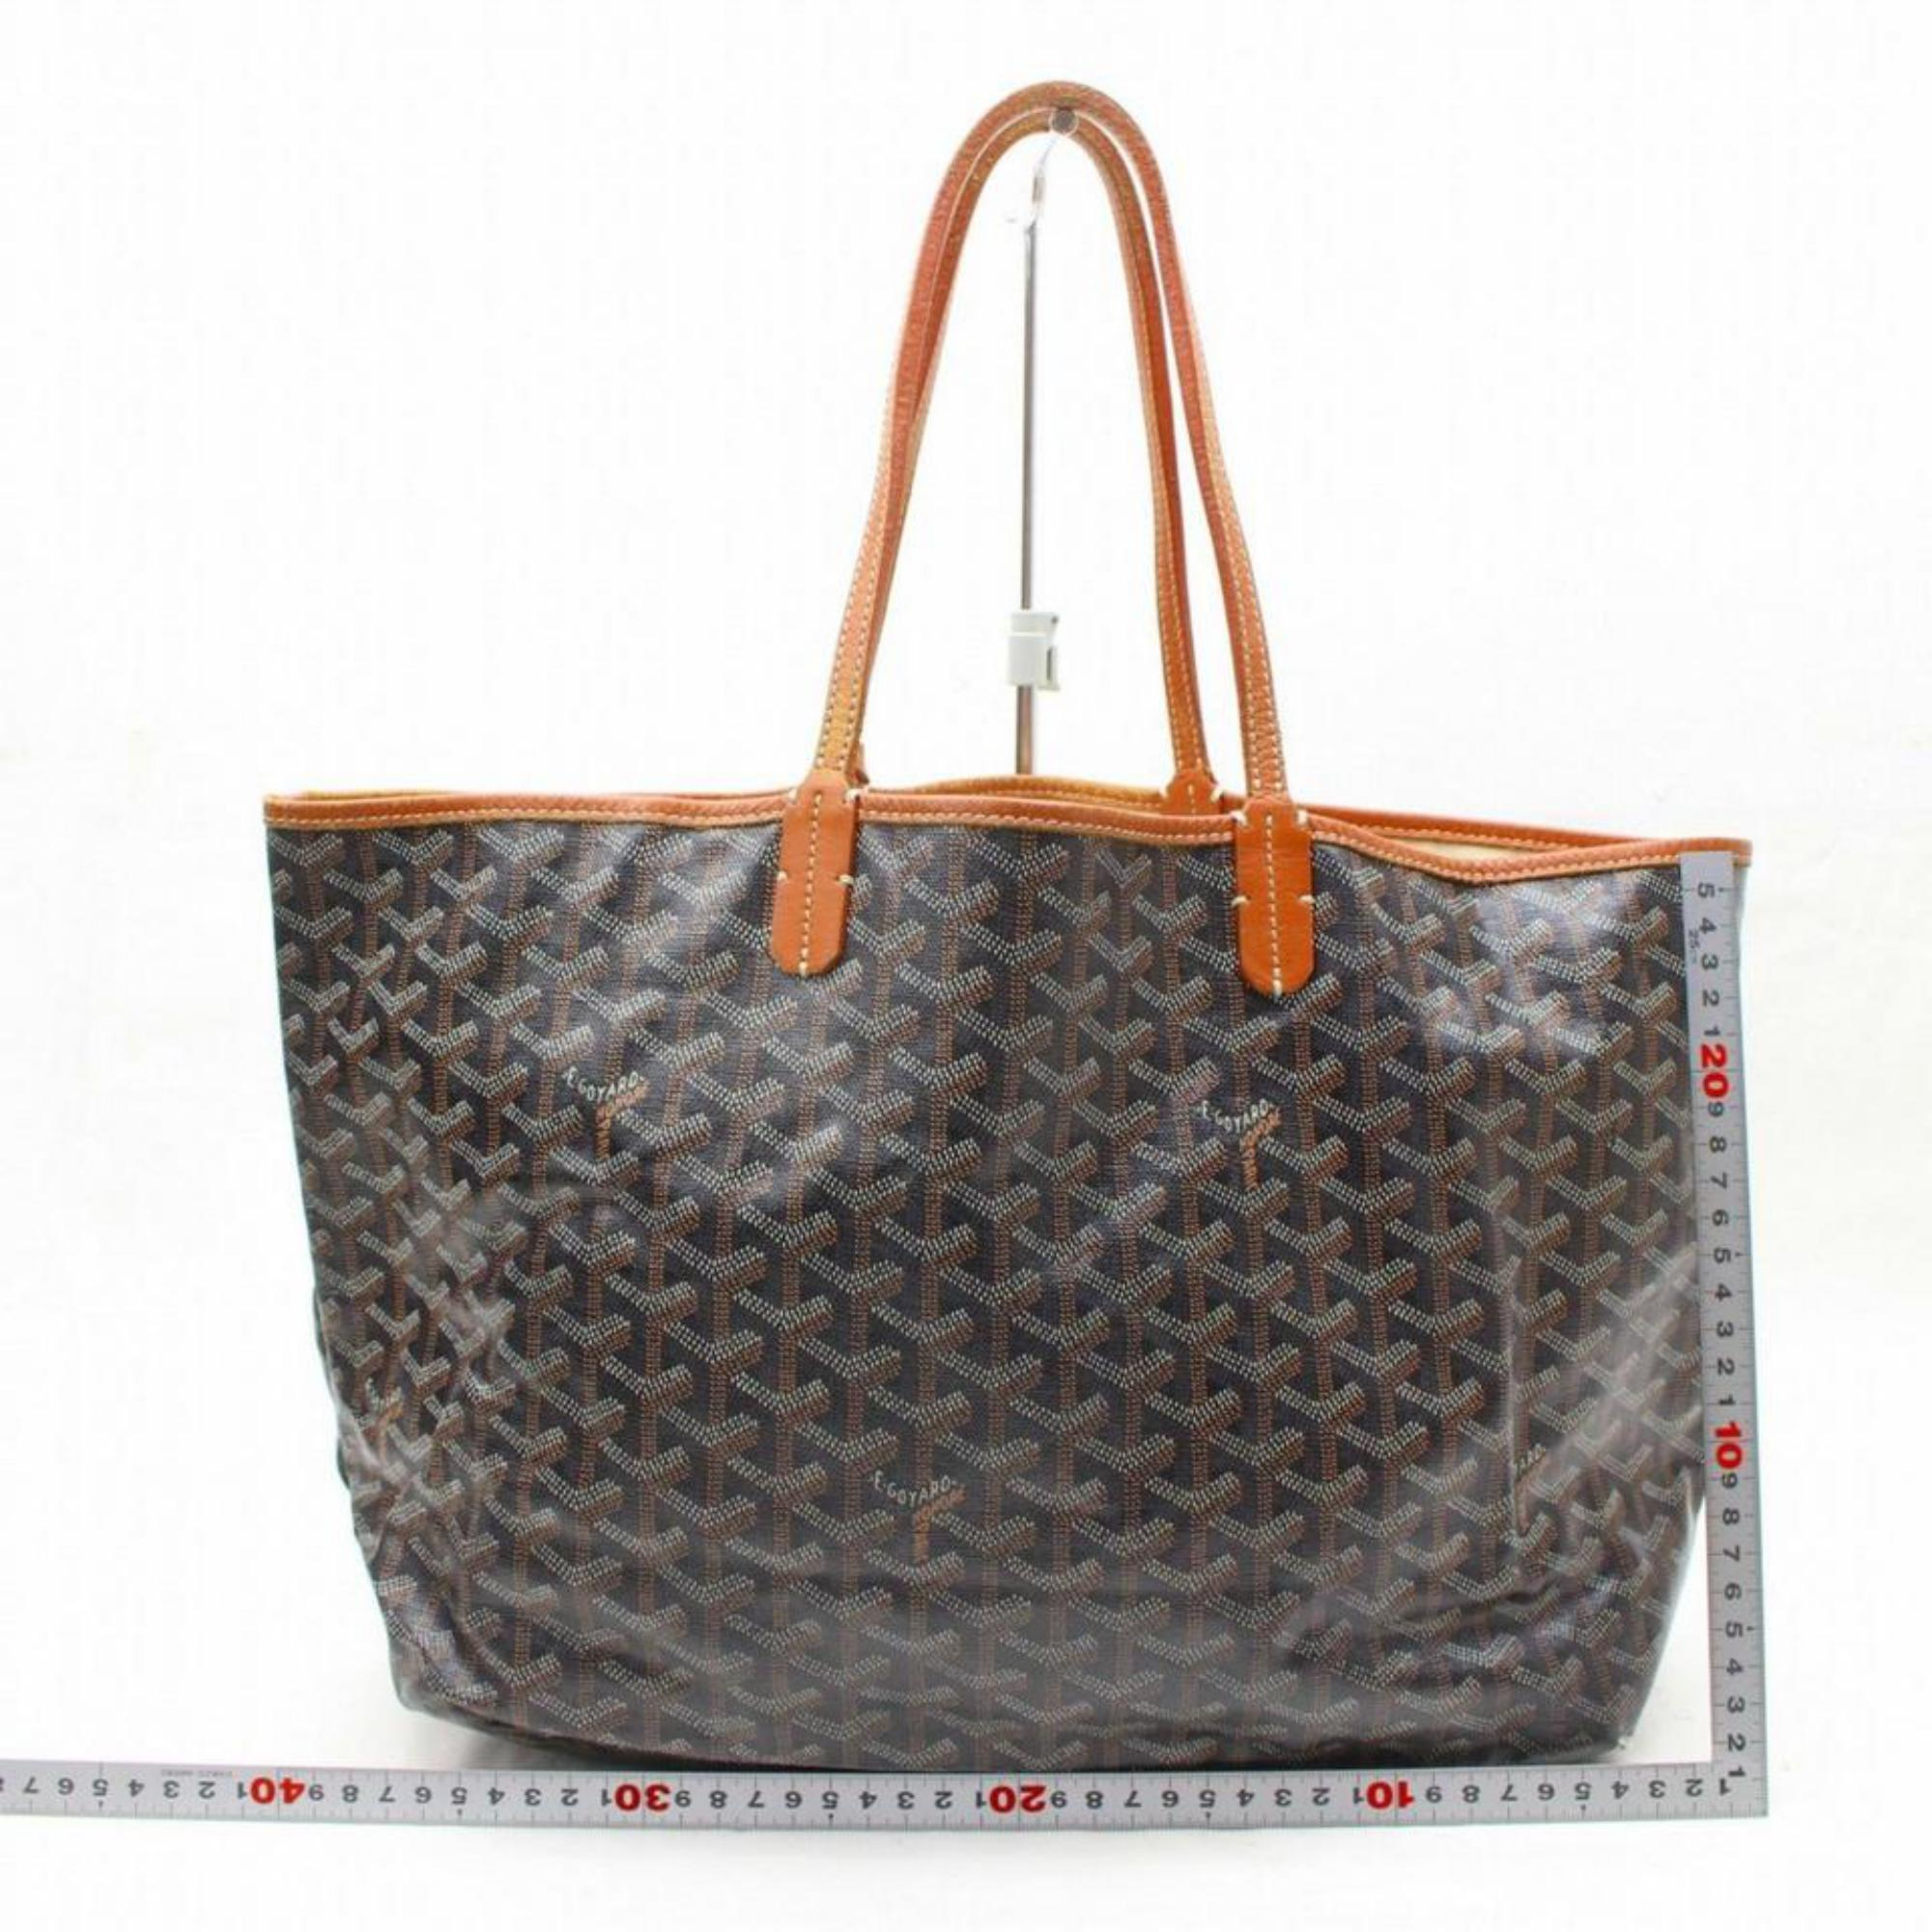 6bbd35c4dc7db3 Goyard Goyardine Chevron St Louis with Pouch 867951 Black Coated Canvas Tote  For Sale at 1stdibs